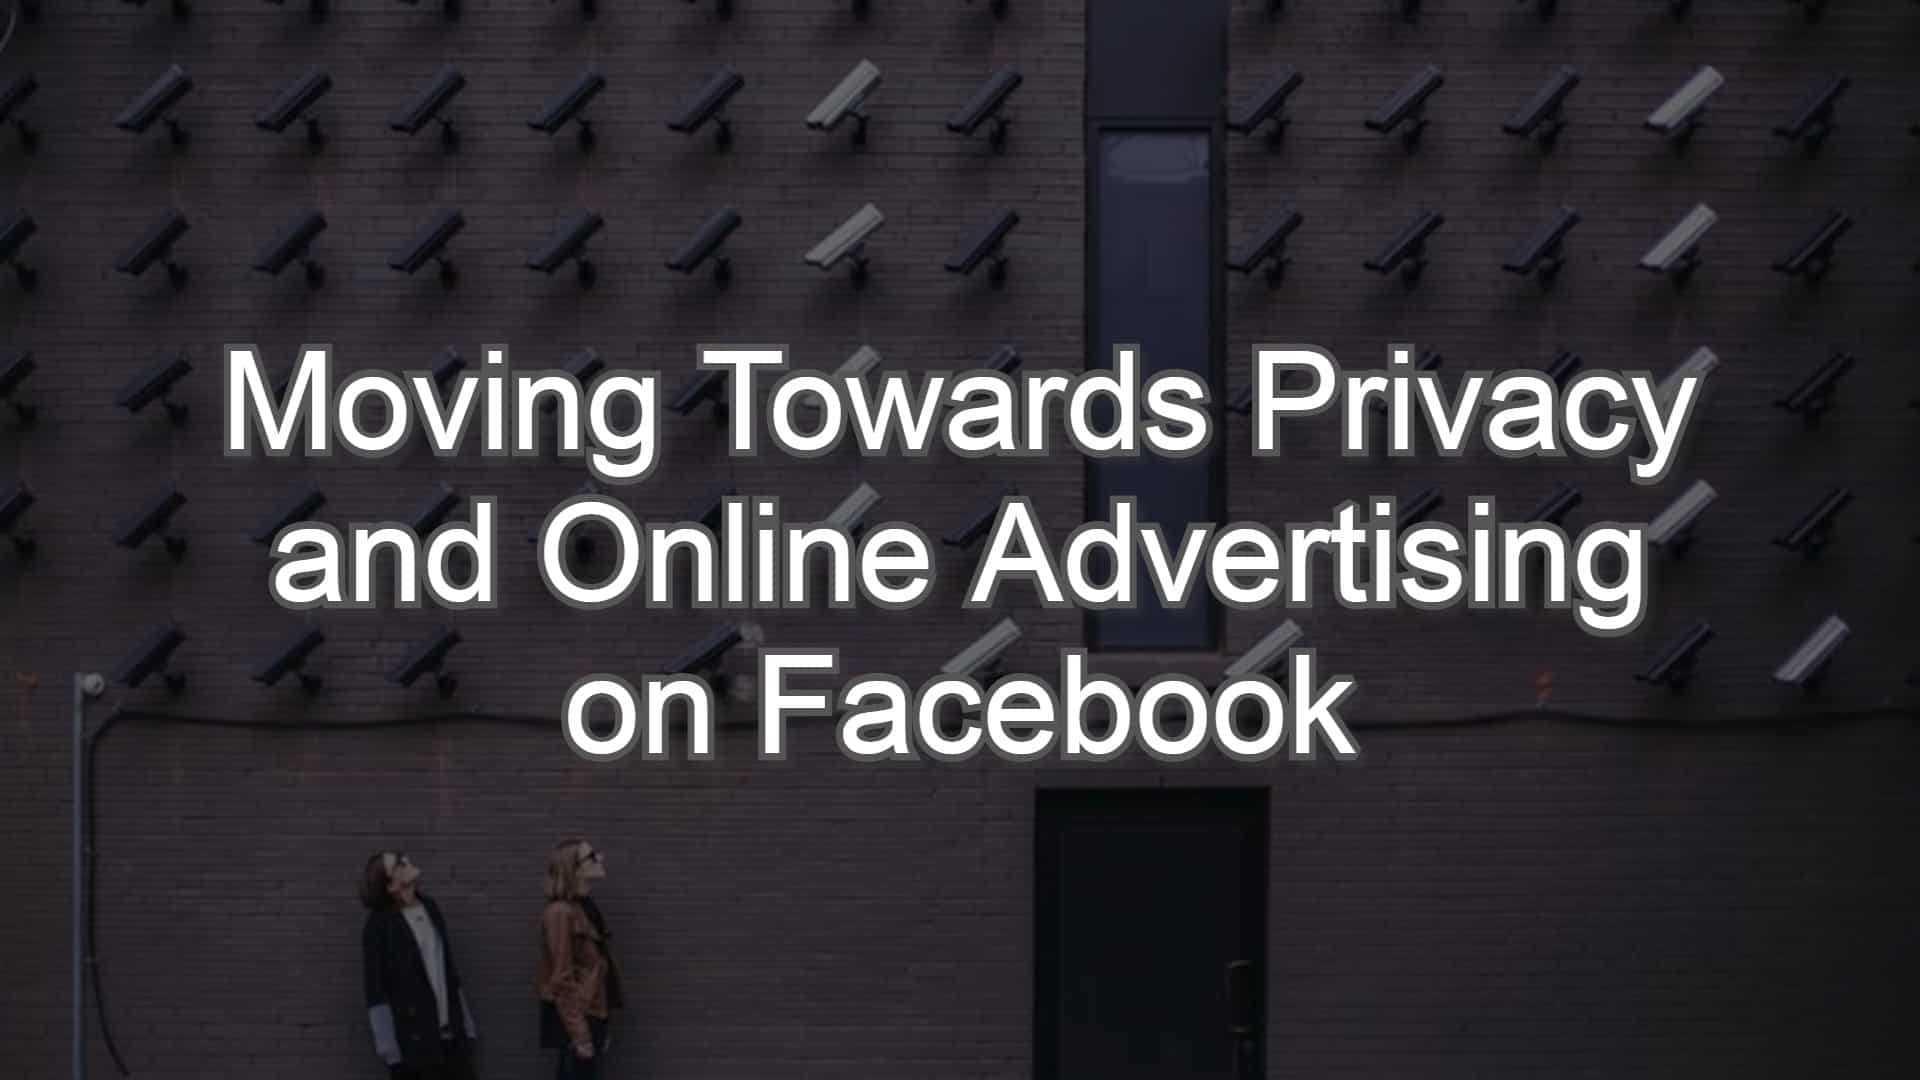 Moving Towards Privacy and Online Advertising on Facebook